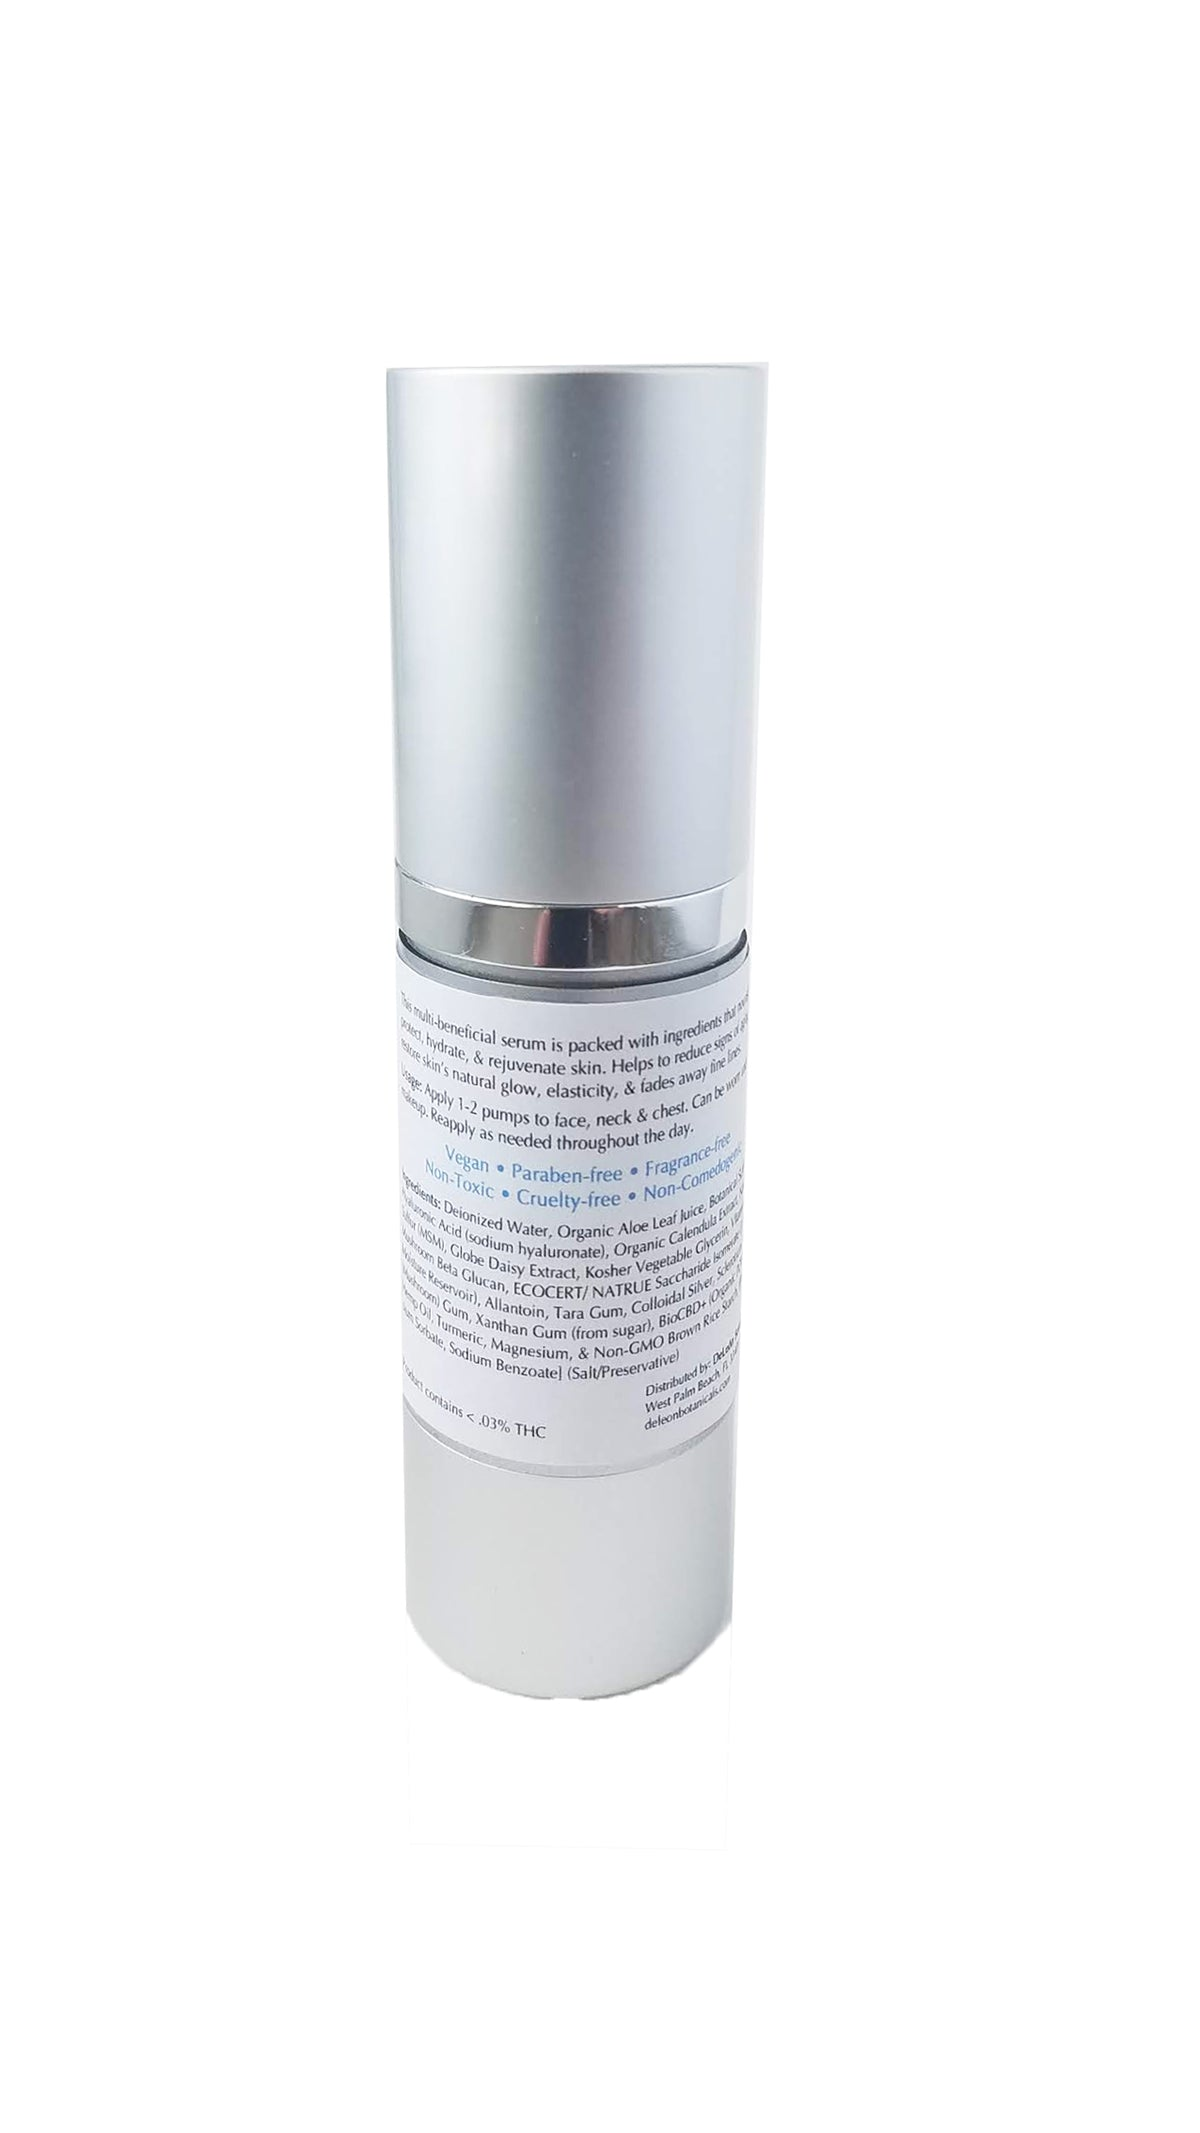 The Fountain of Youth - Anti-Aging Serum